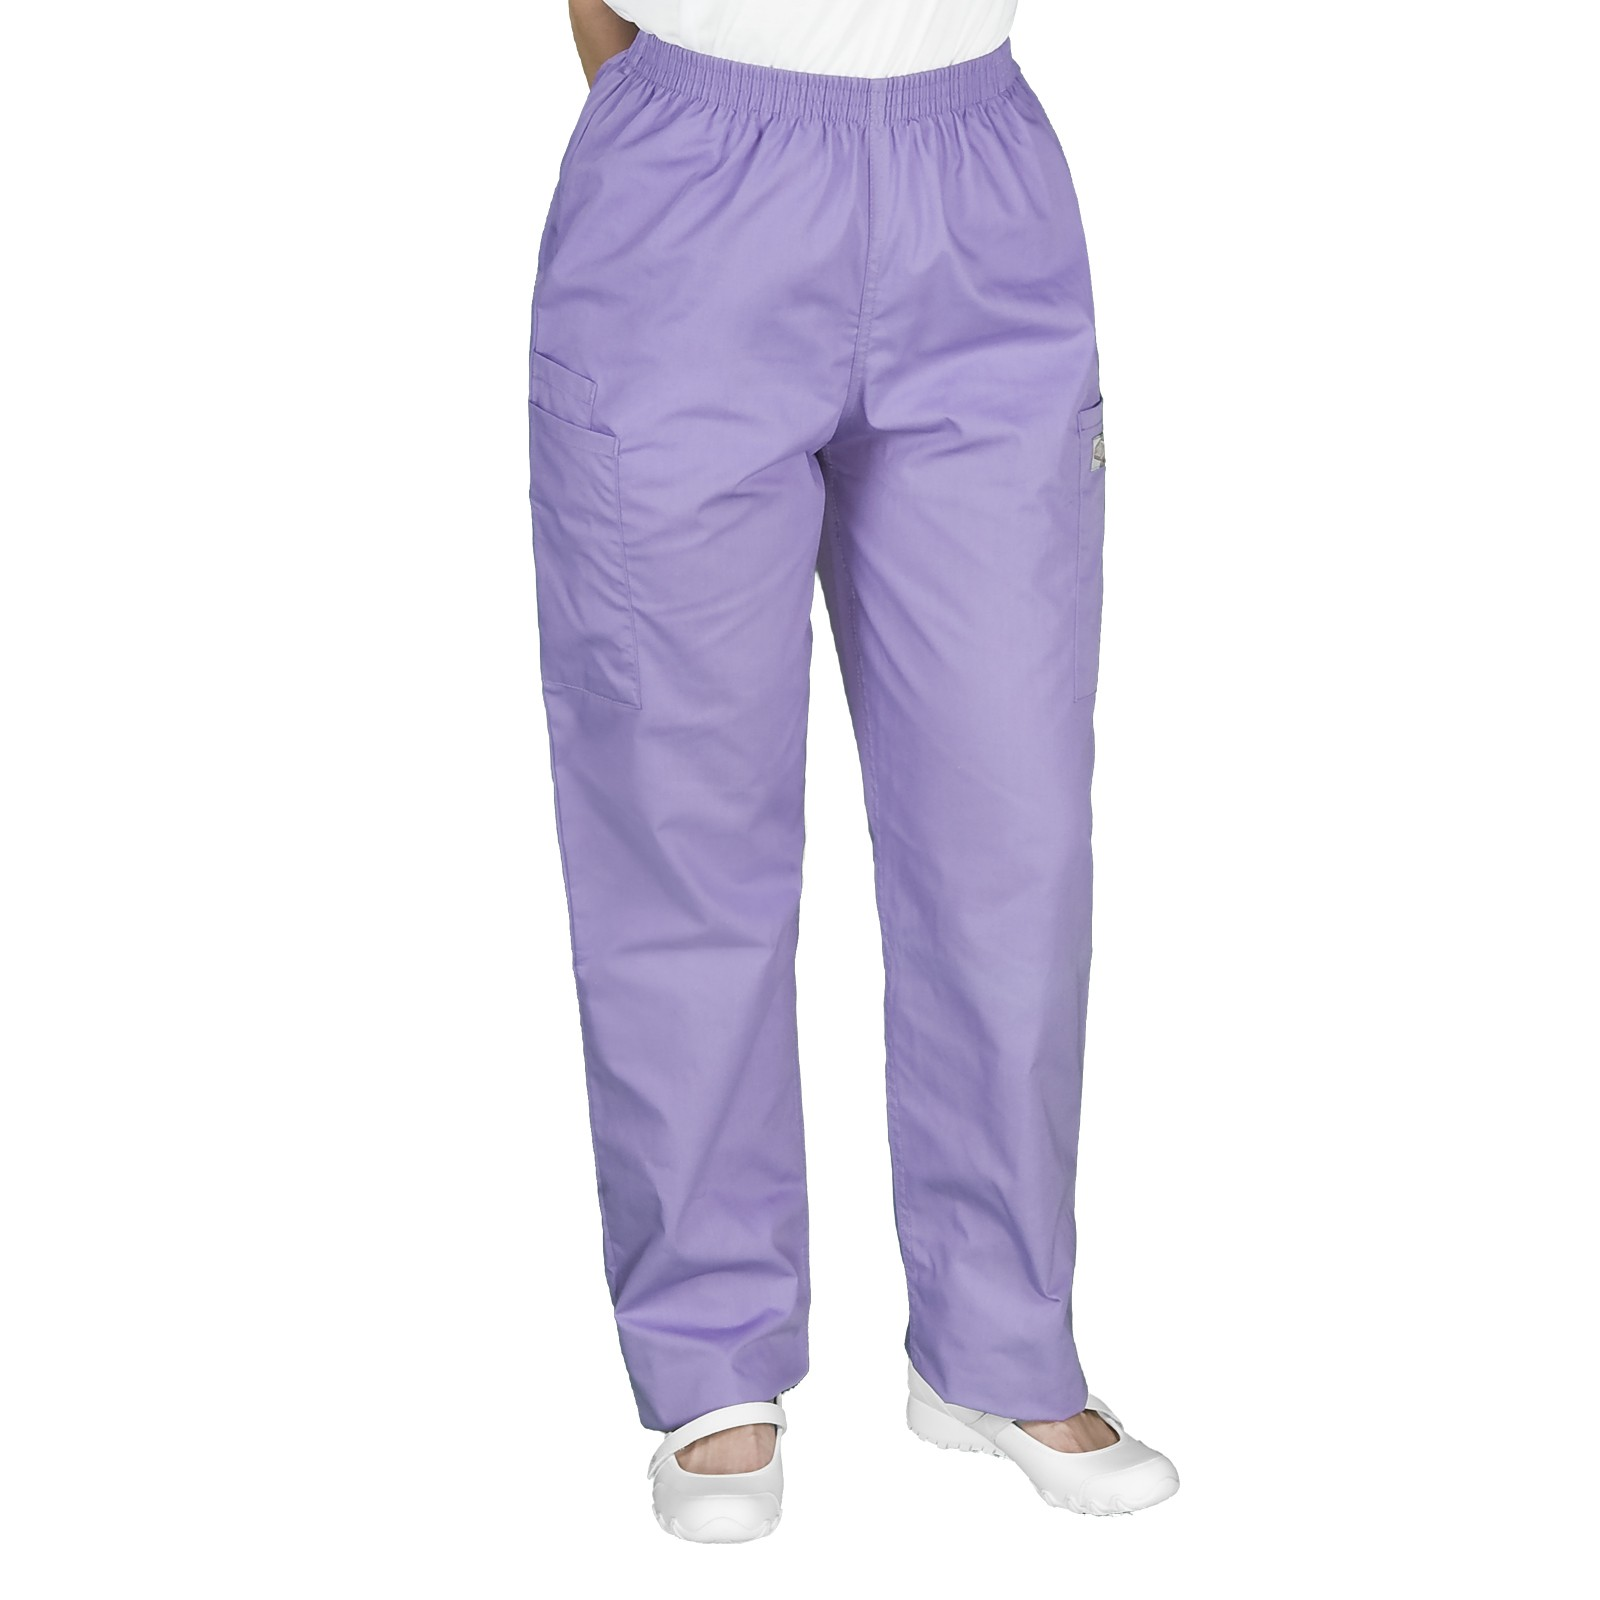 womens cargo pants with elastic waist photo - 2